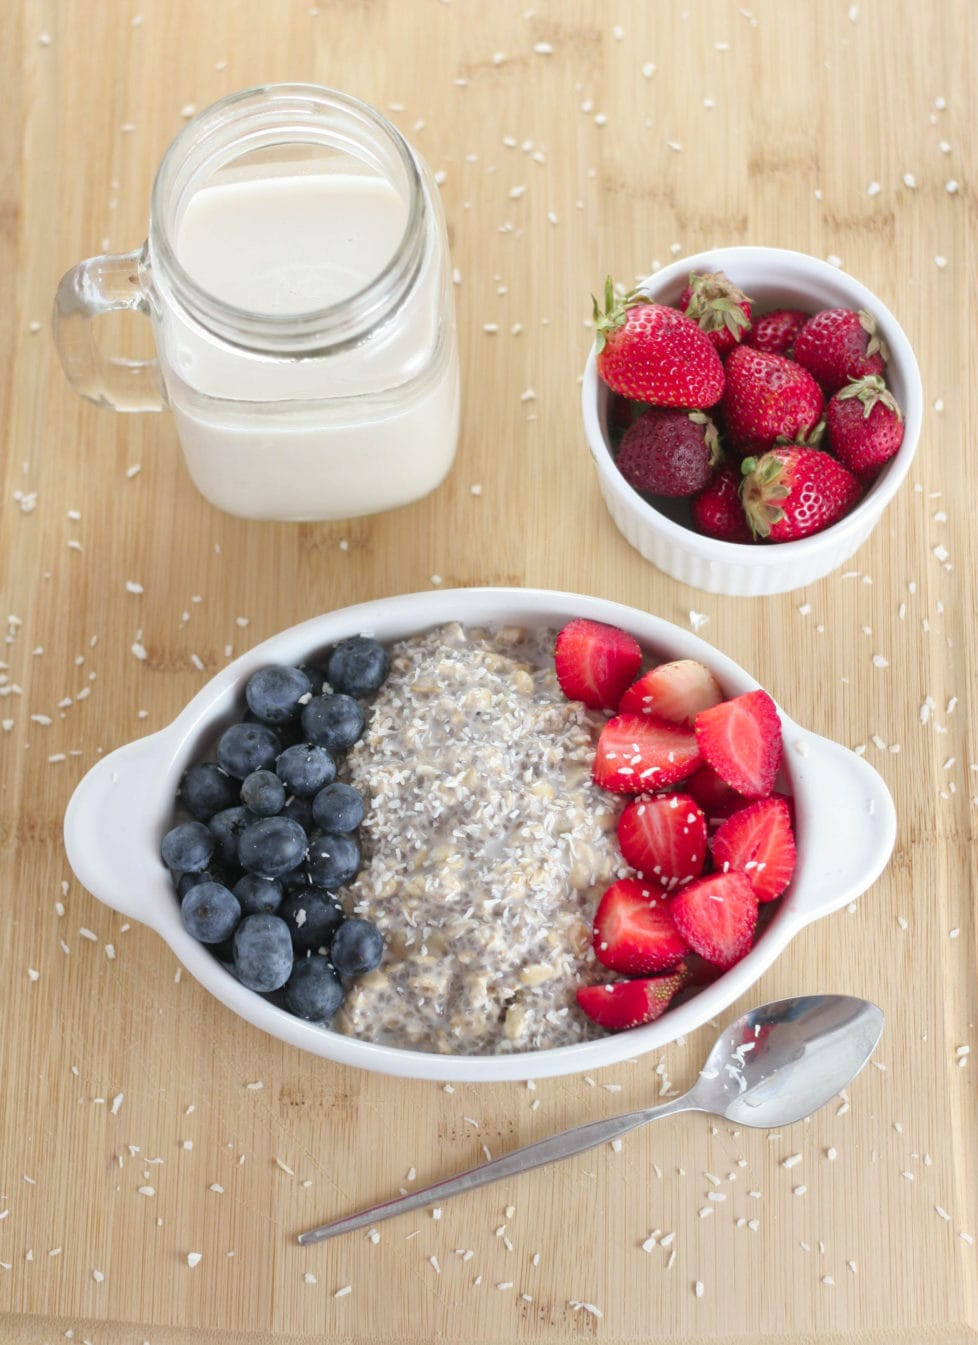 A bowl of overnight oats on a wooden table with berries and plant based milk